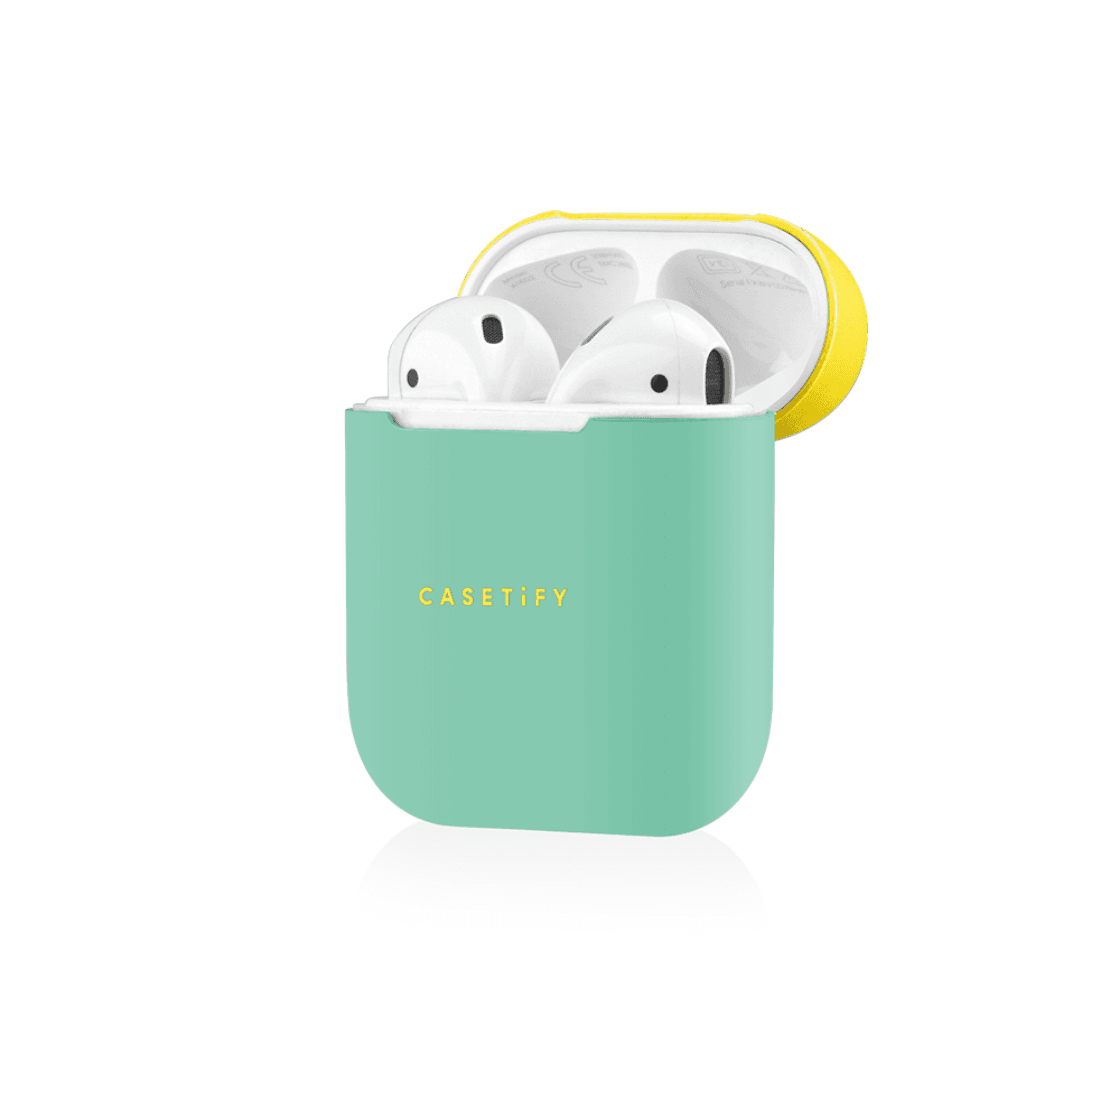 Neon Airpods Case Cover And Skin For Apple Airpods Charging Case Casetify Earbuds Case Apple Accessories Iphone 6 Case